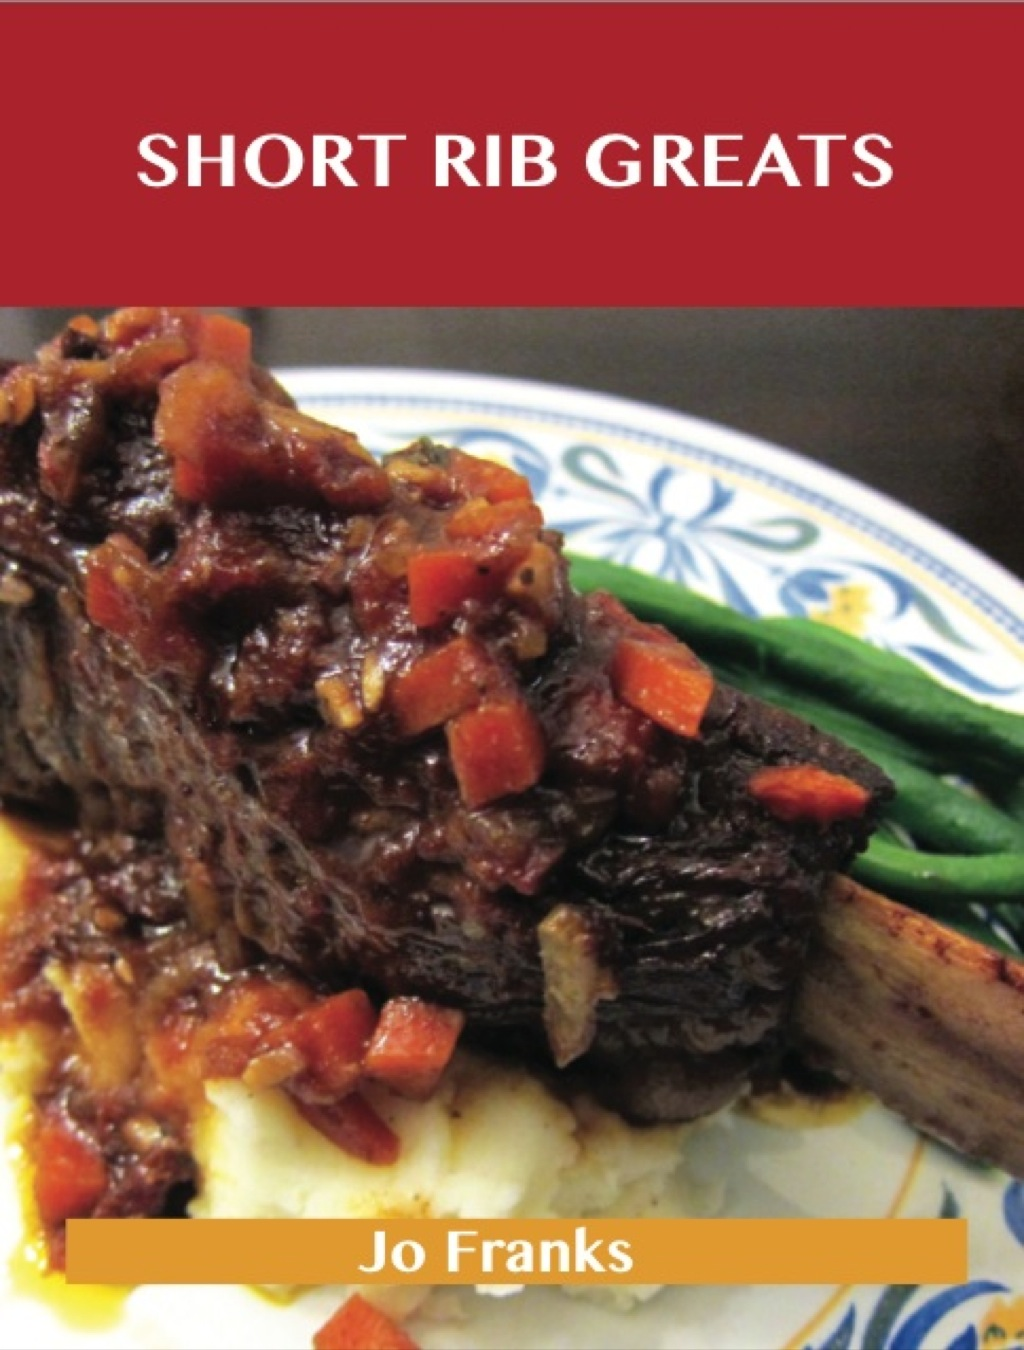 Short Rib Greats: Delicious Short Rib Recipes, The Top 48 Short Rib Recipes (ebook) eBooks